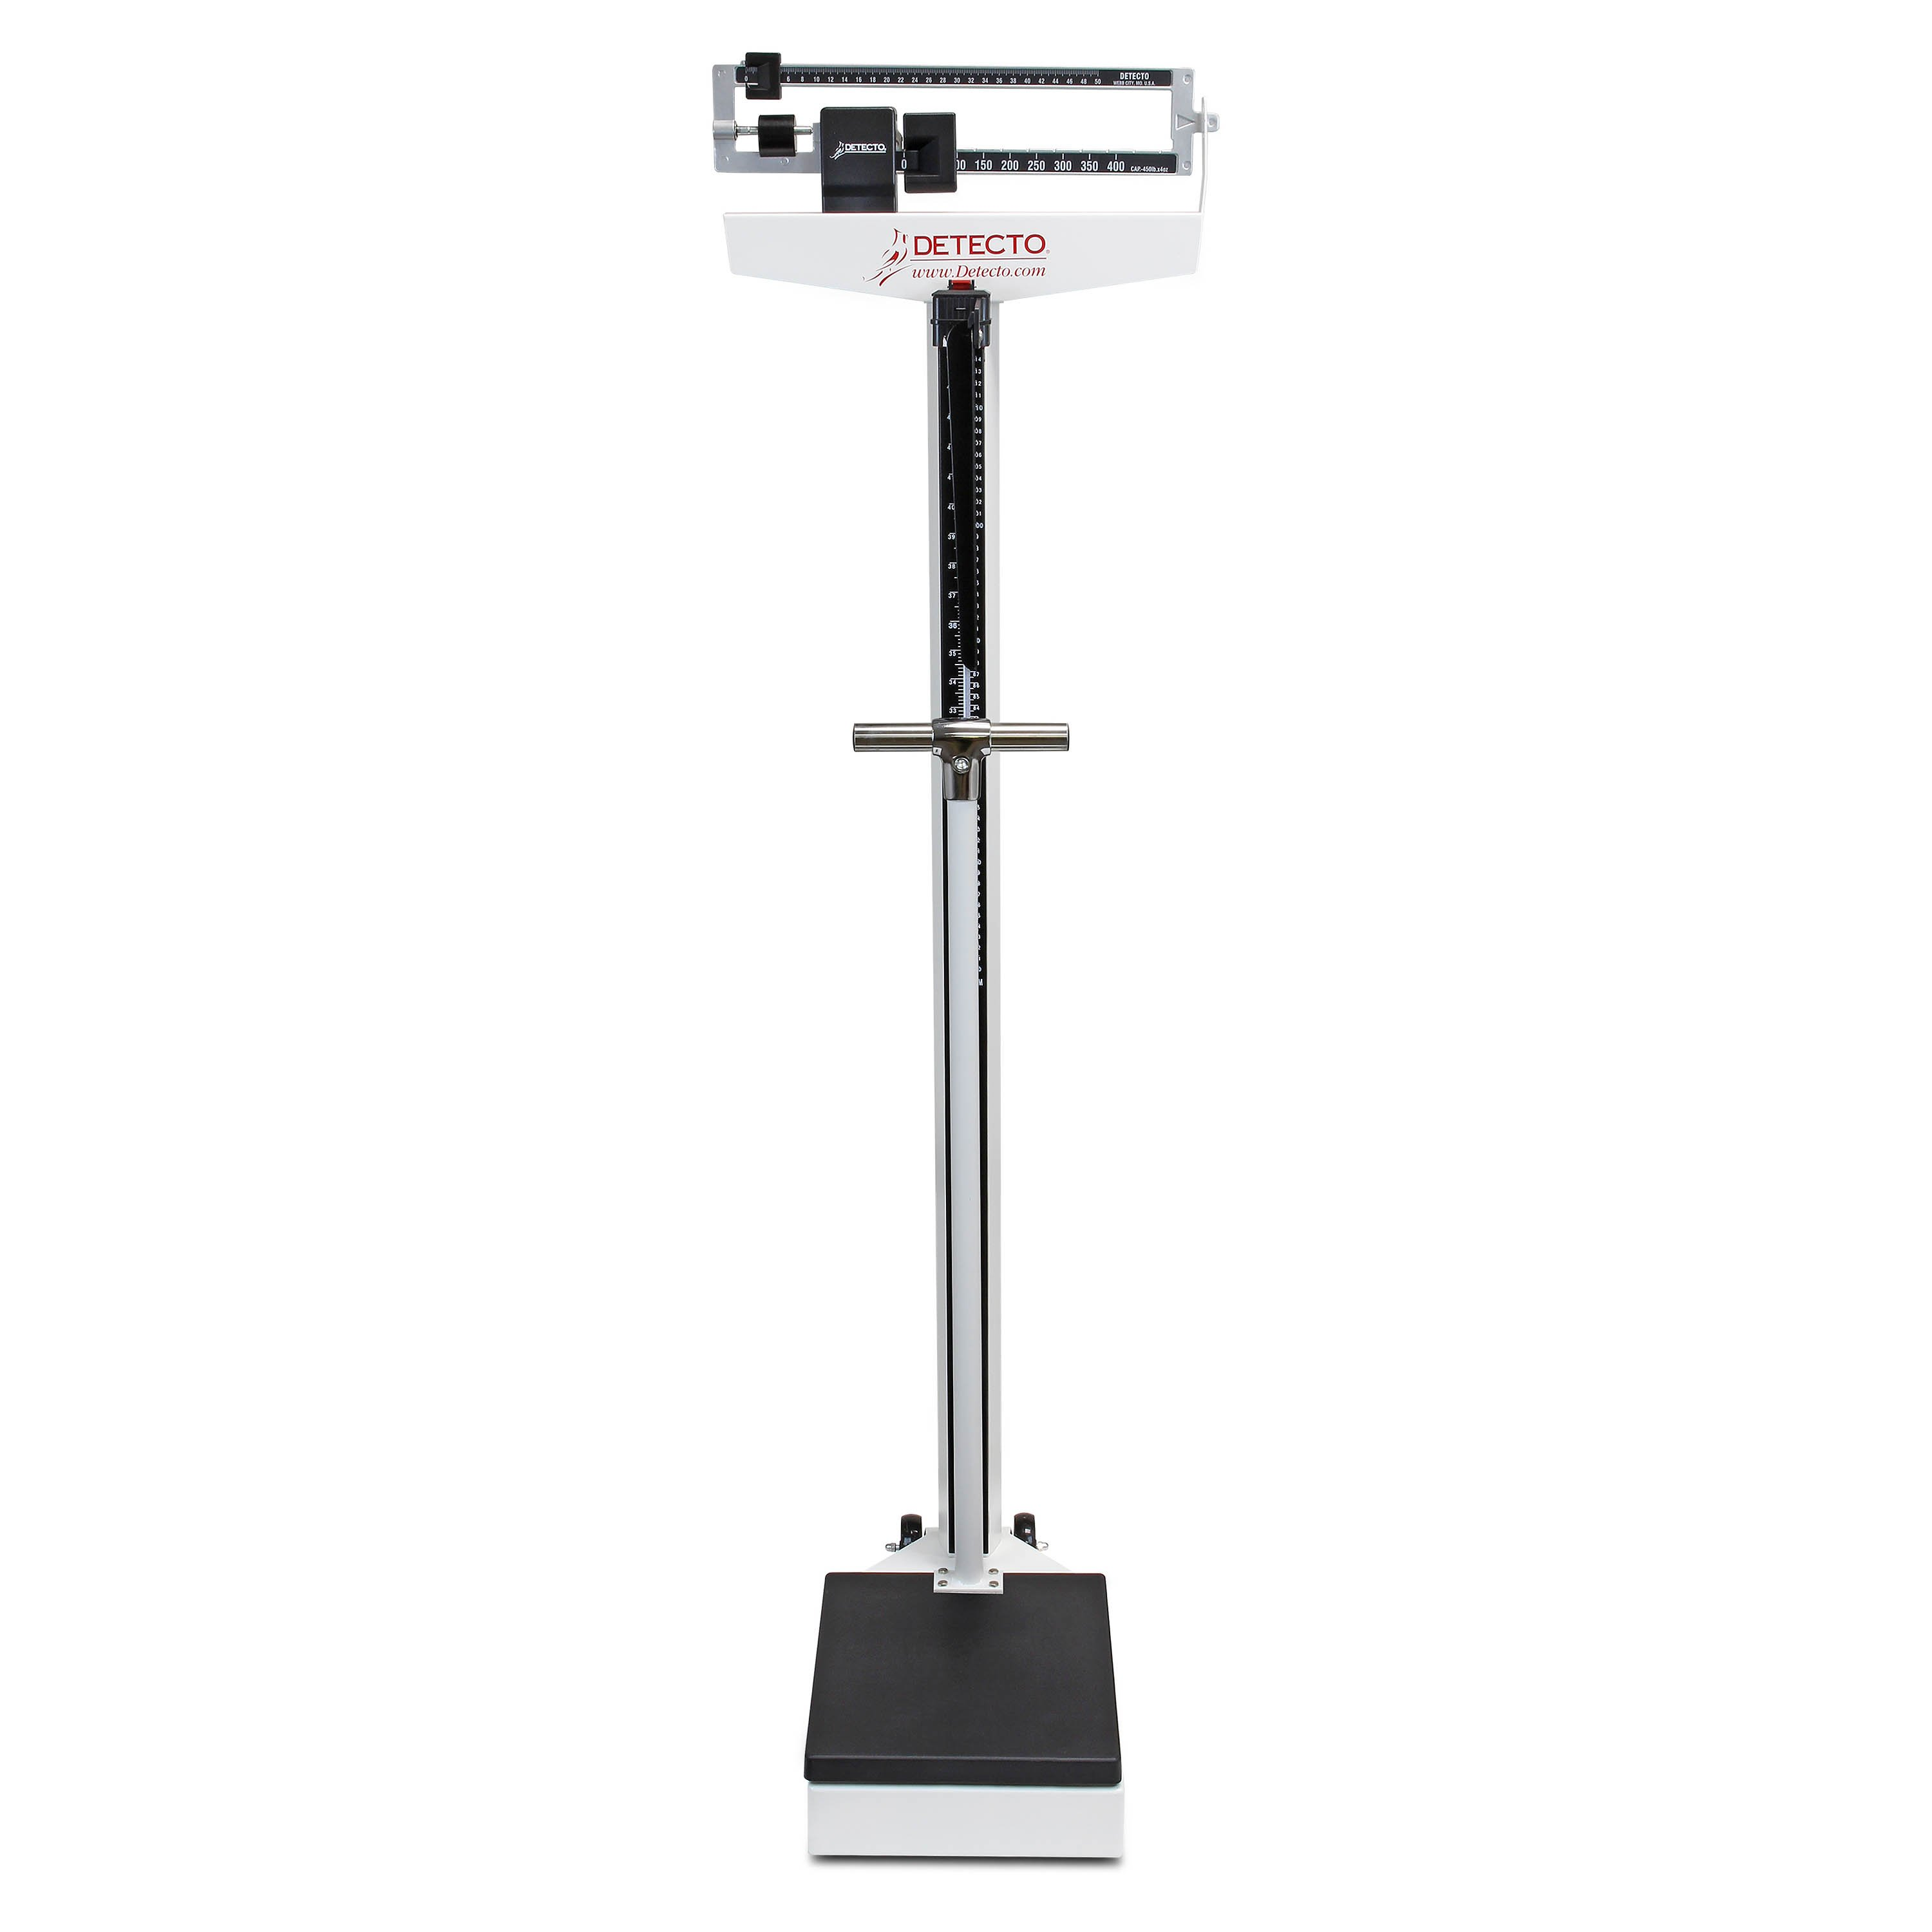 Mechanical Eye-Level Scale - White - Lb Display - Capacity 450 lb - With Height Rod, Handpost and Wheels